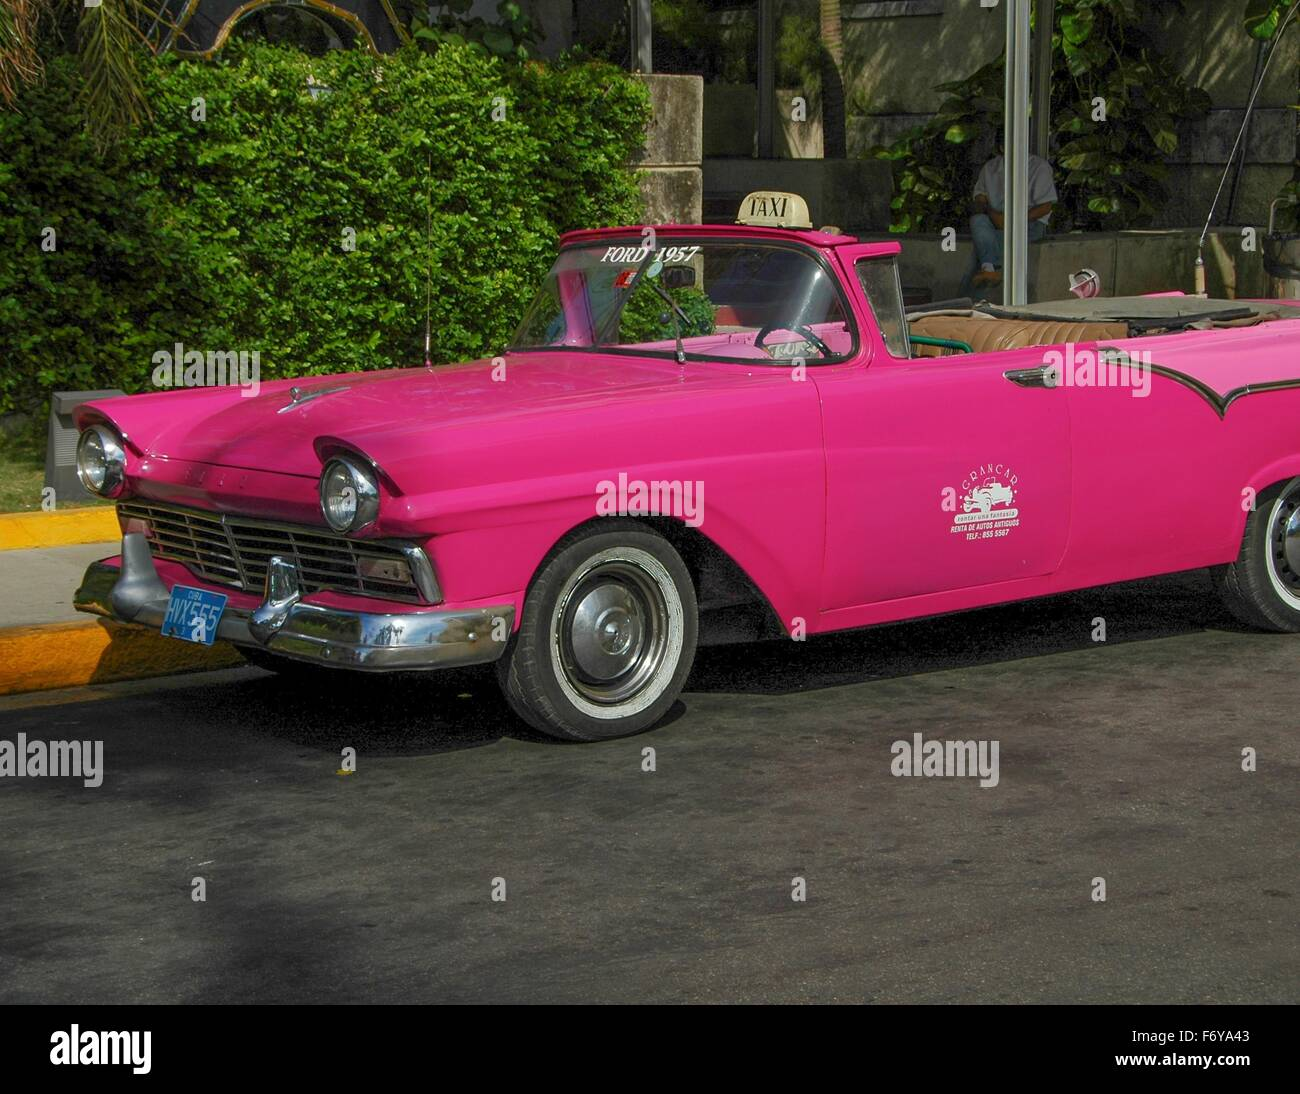 1950's cars are seen throughout Cuba - Stock Image